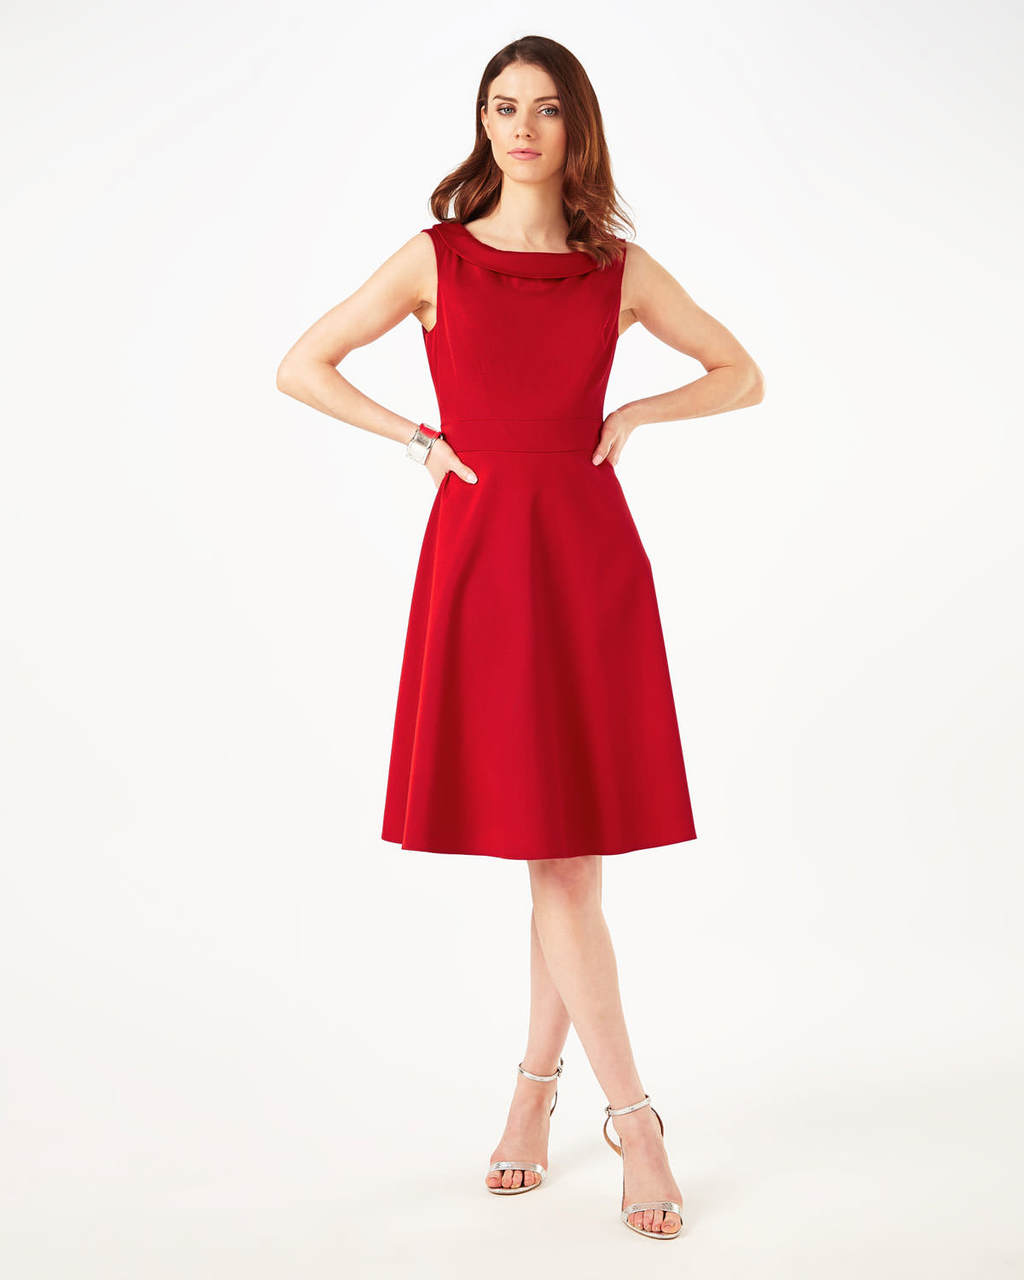 Nicole Dress - pattern: plain; sleeve style: sleeveless; predominant colour: true red; occasions: evening; length: on the knee; fit: fitted at waist & bust; style: fit & flare; fibres: viscose/rayon - stretch; neckline: crew; sleeve length: sleeveless; pattern type: fabric; texture group: jersey - stretchy/drapey; season: s/s 2016; wardrobe: event